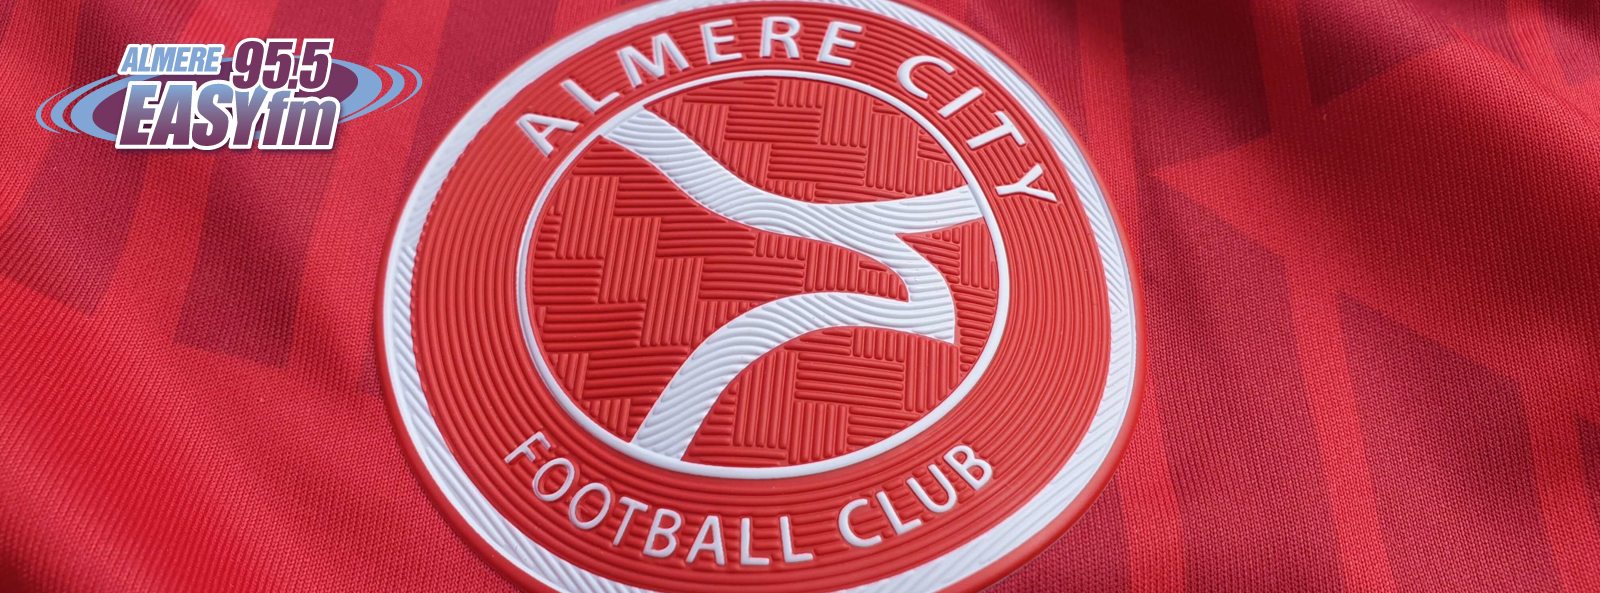 Almere City FCJingles - HOT AC